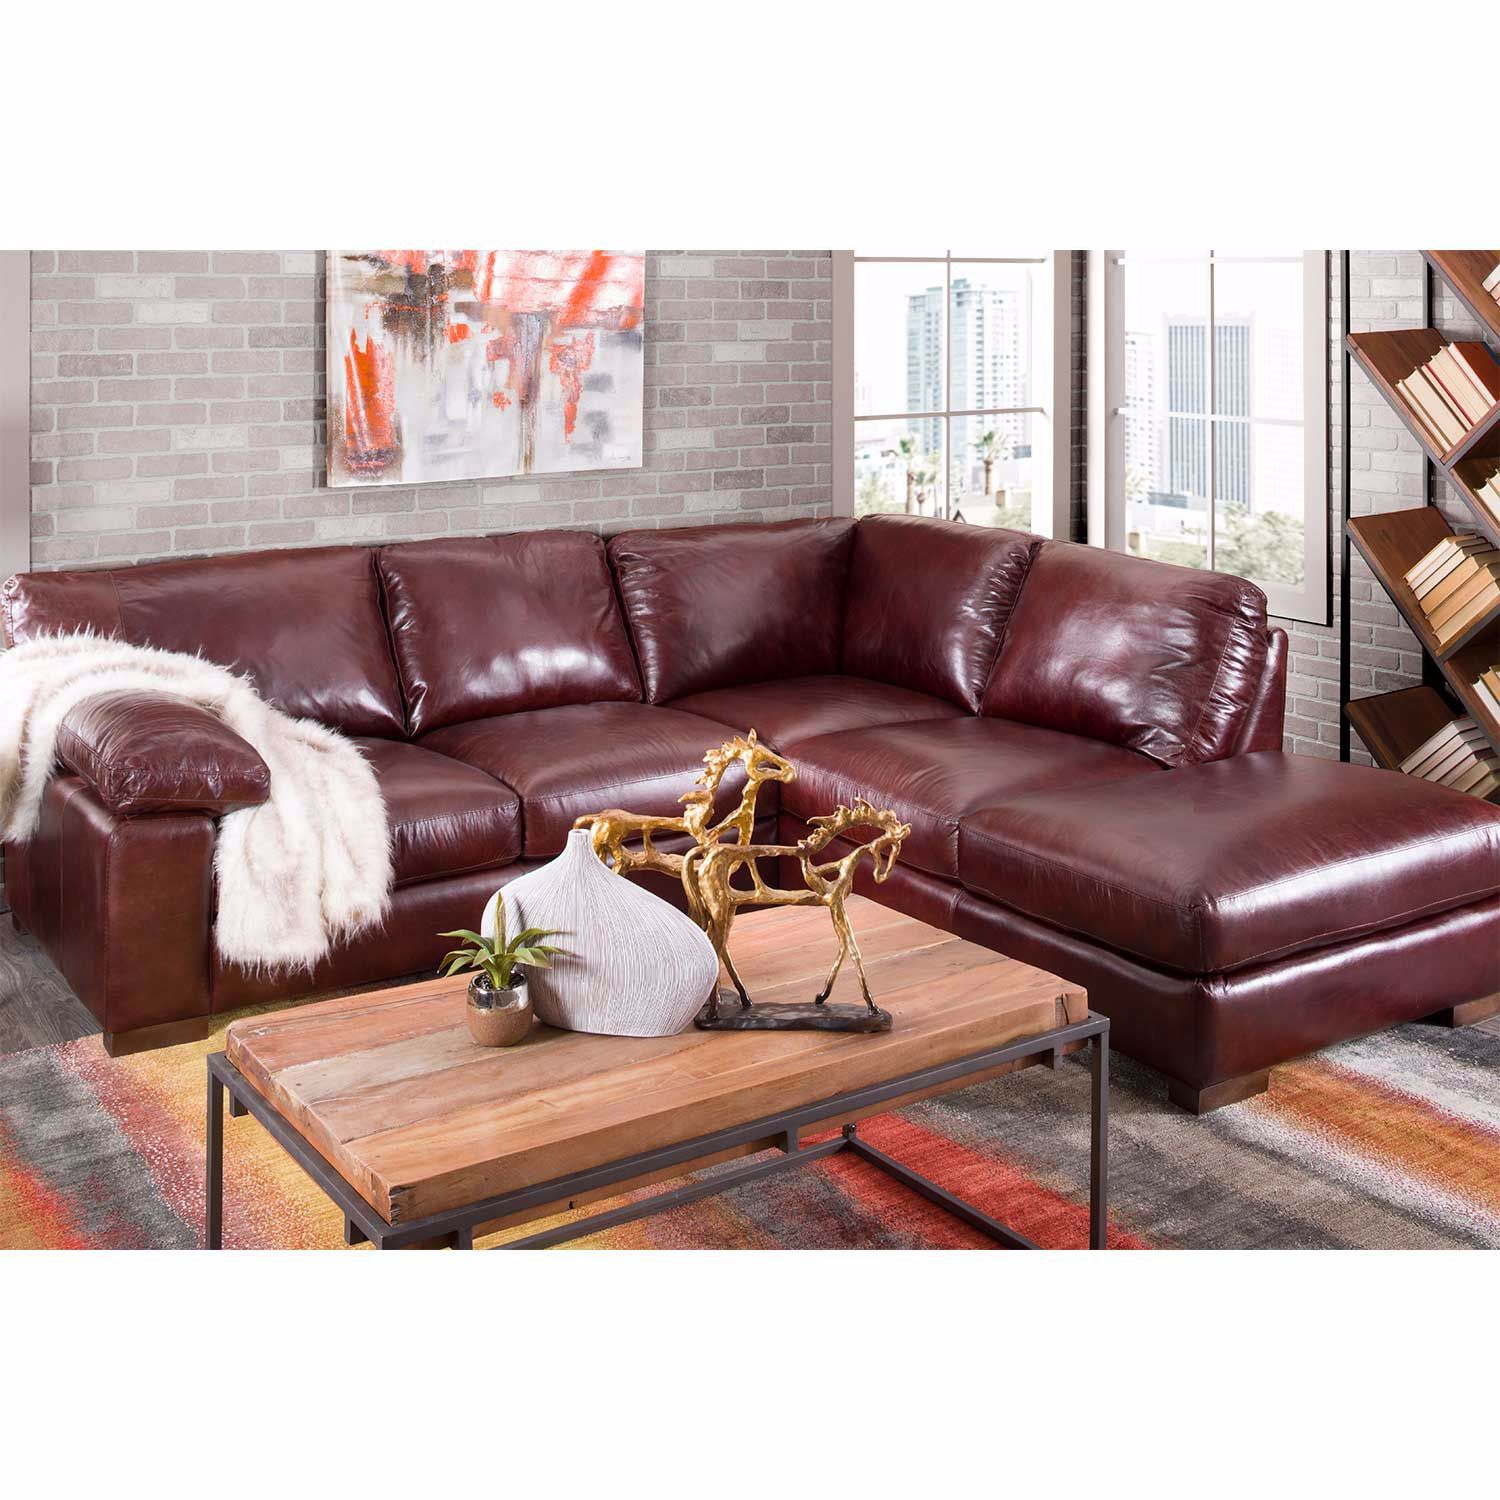 Barcelona All Leather 2 Piece Sectional With RAF Chaise